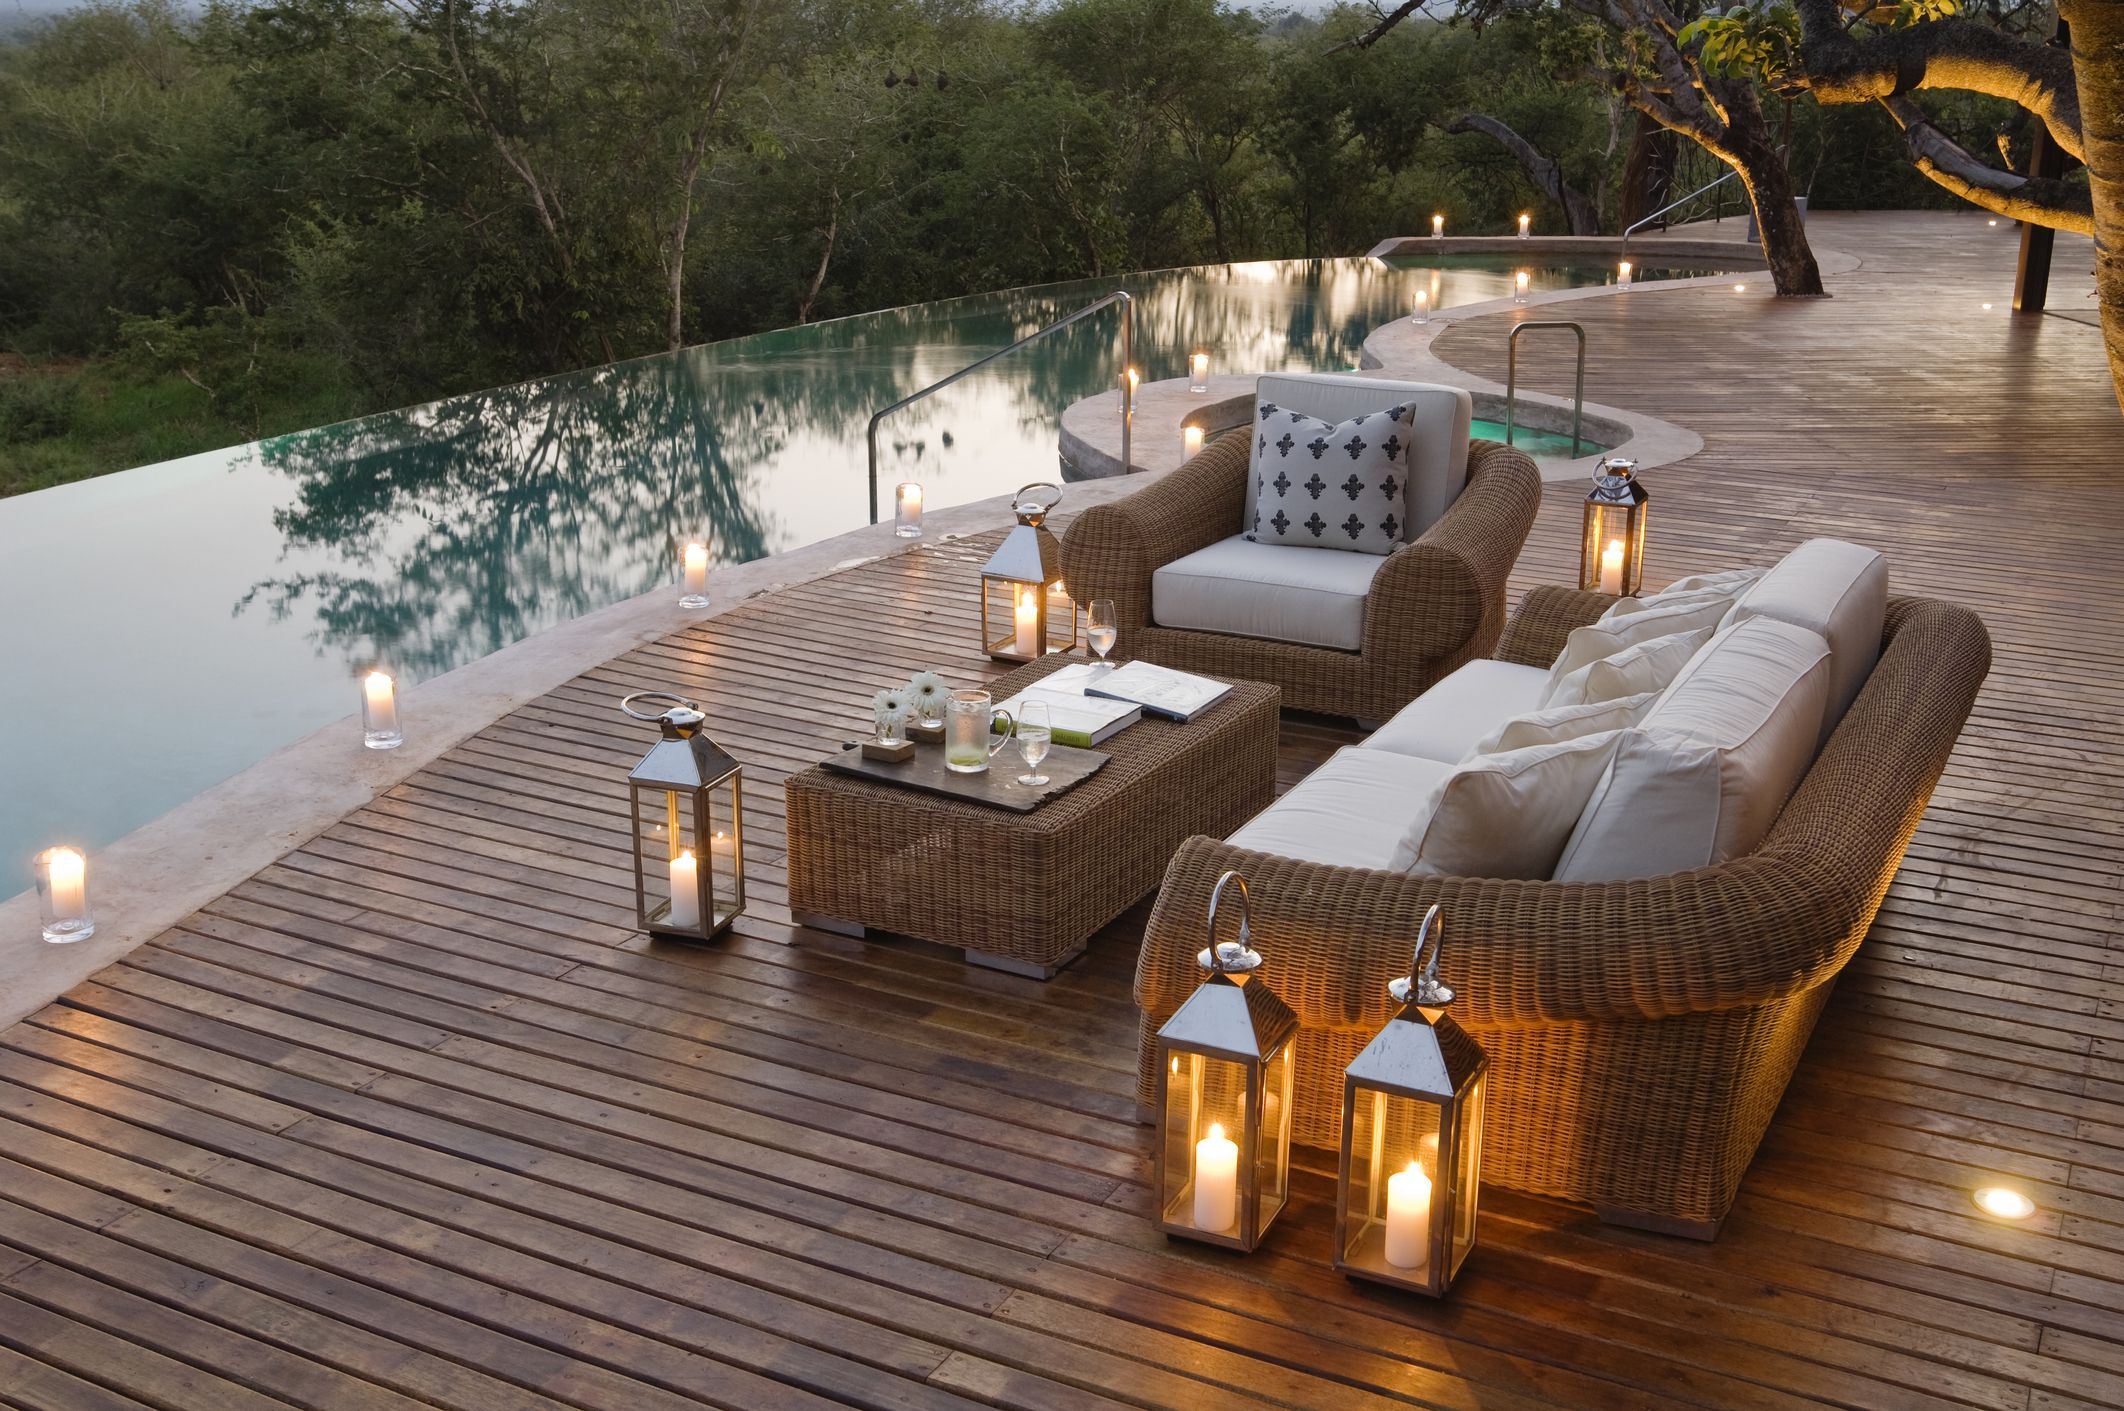 Great Outdoor Deck Design Ideas and Inspiration on Patio With Deck Ideas id=57431